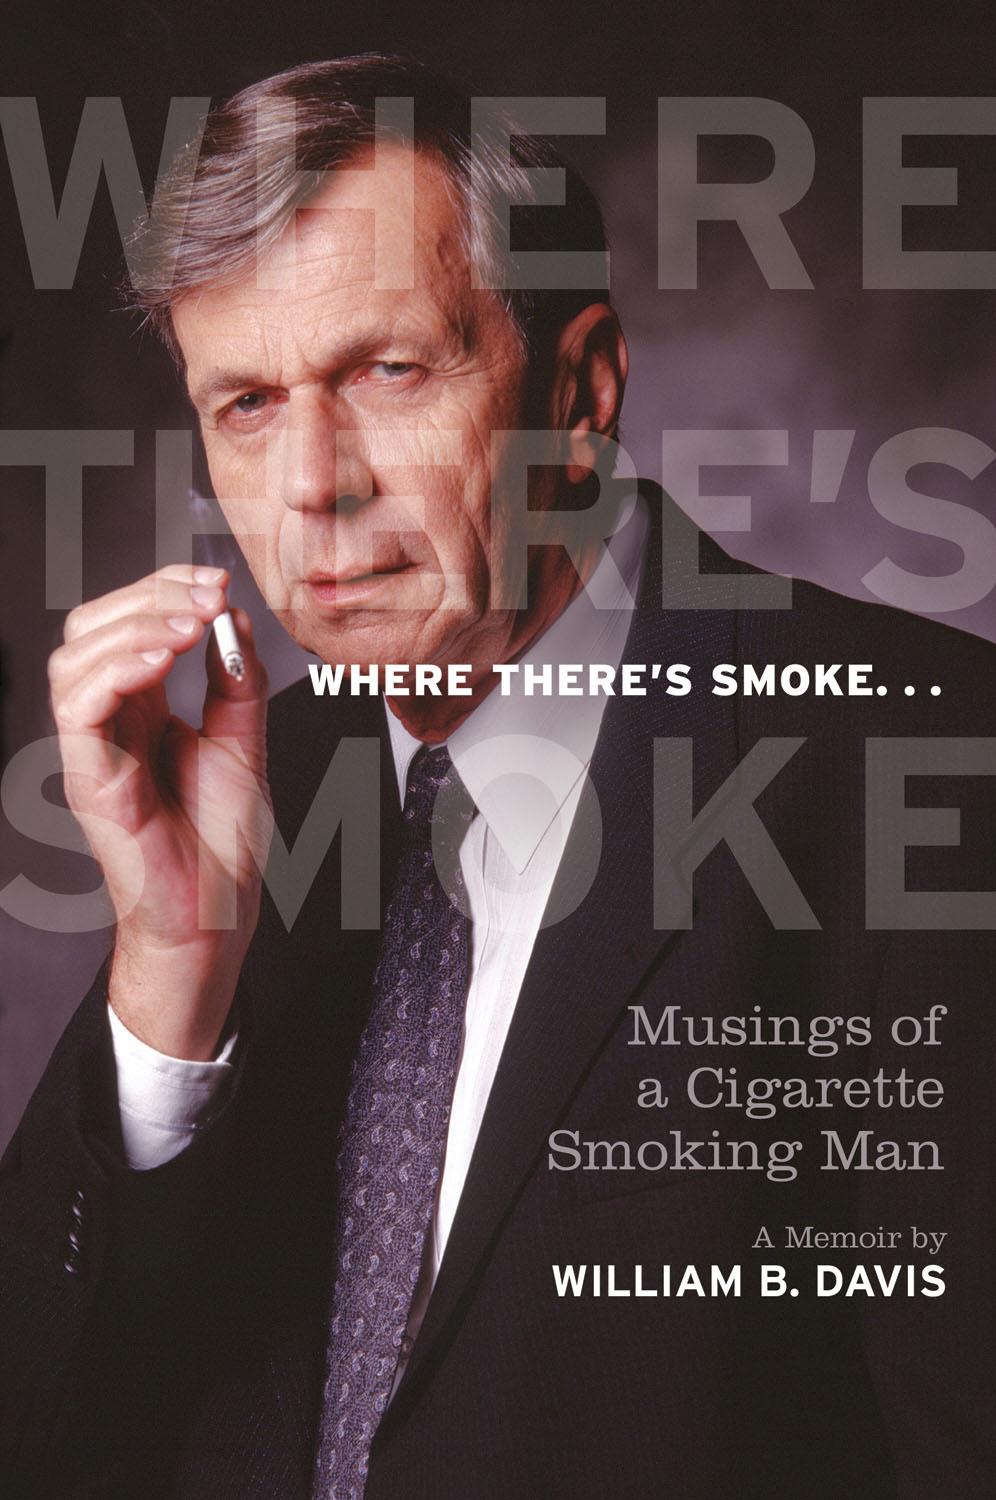 Quotes X Files Where There's Smoke Newsouth Books